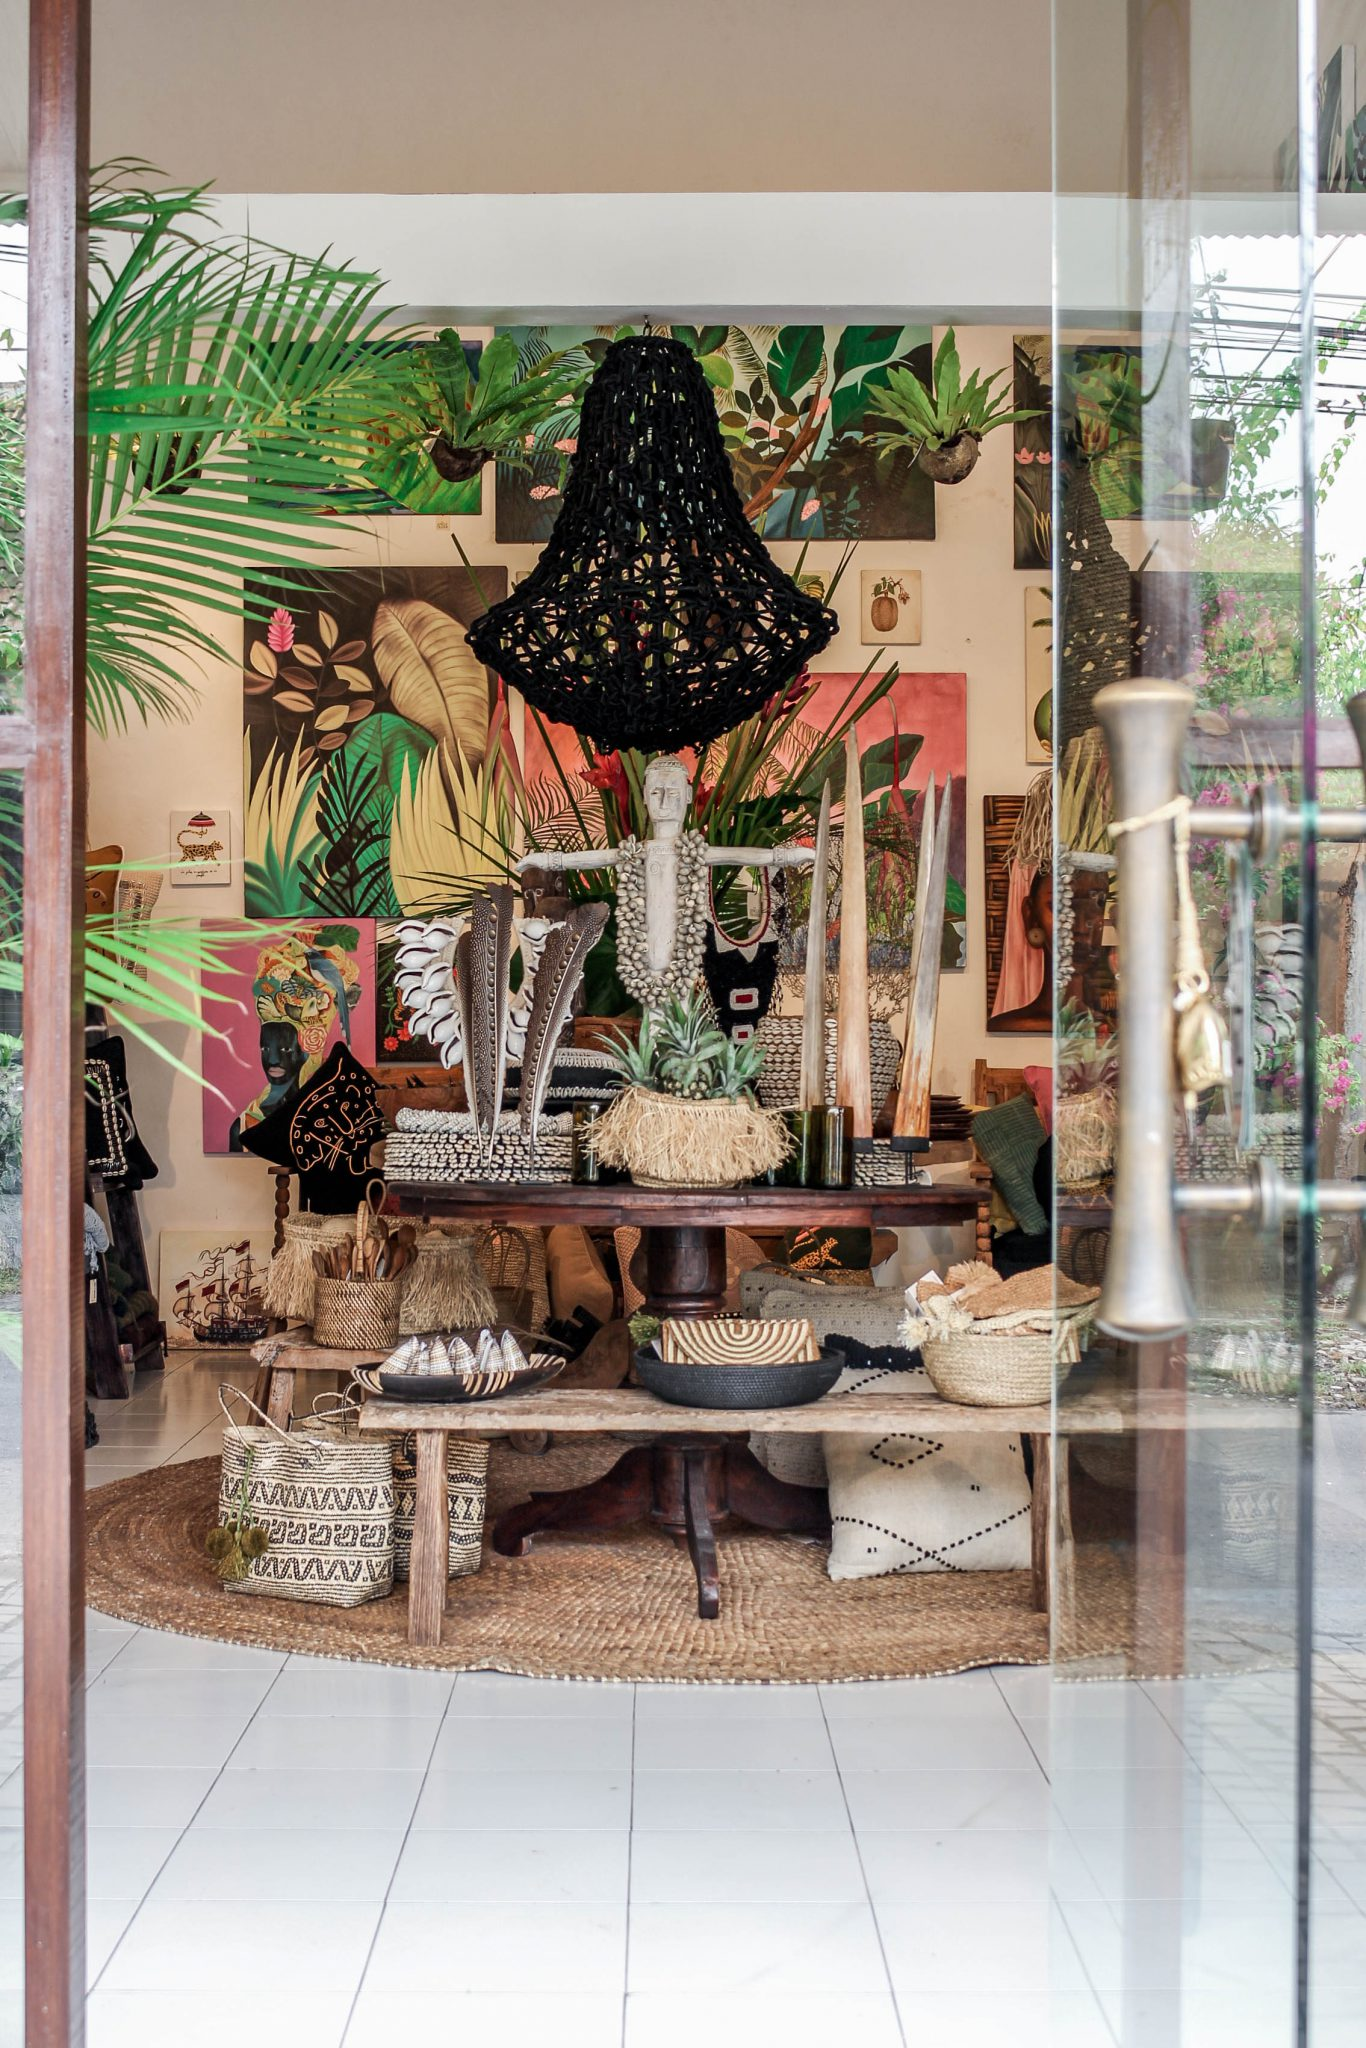 Bali Interiors- The Jungle trader